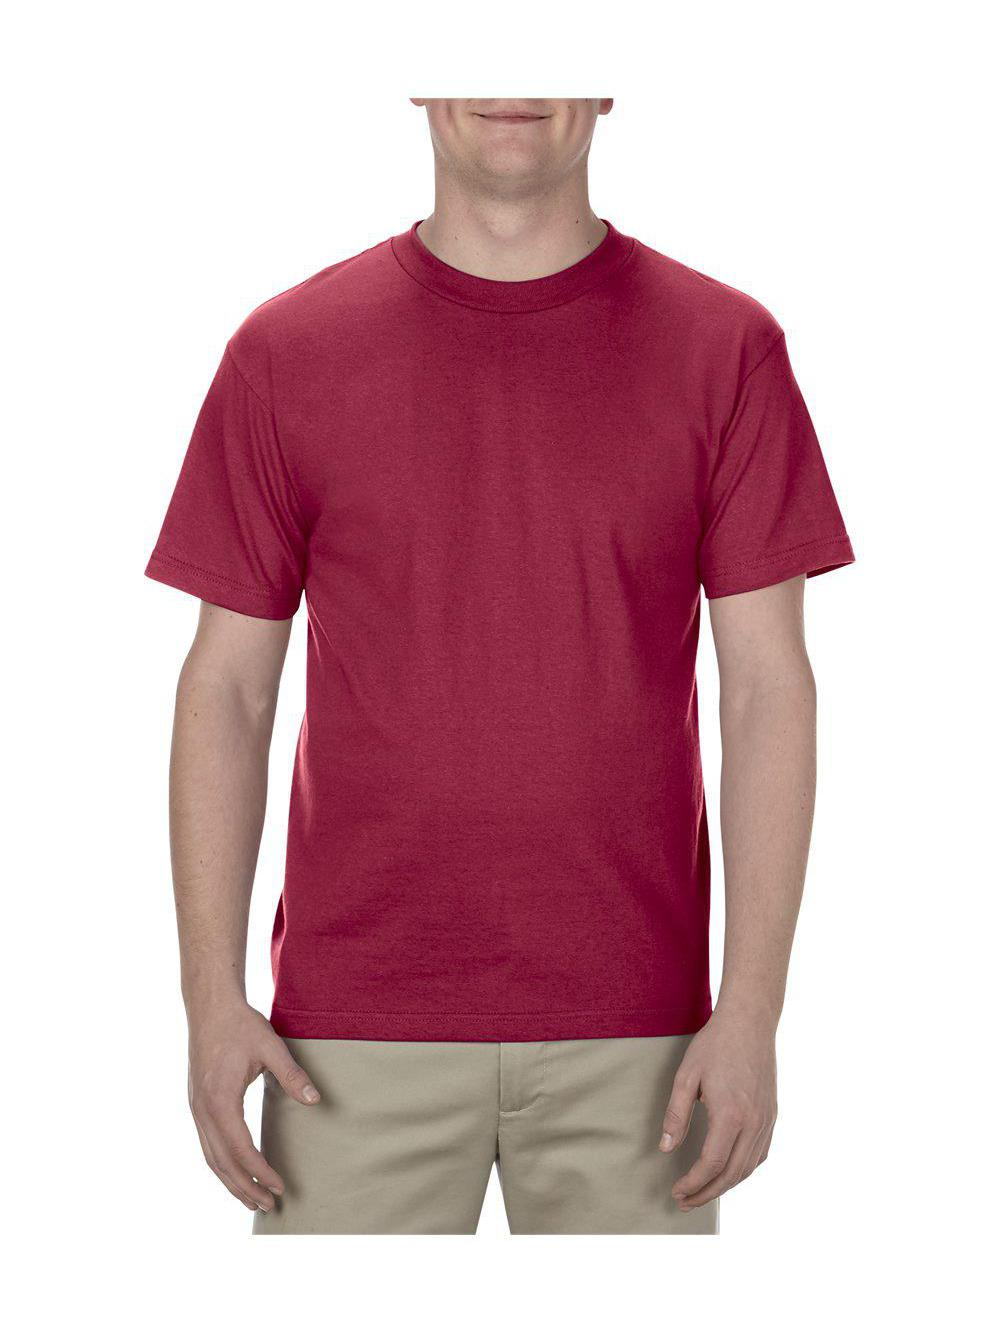 ALSTYLE-Classic-T-Shirt-1301 thumbnail 18